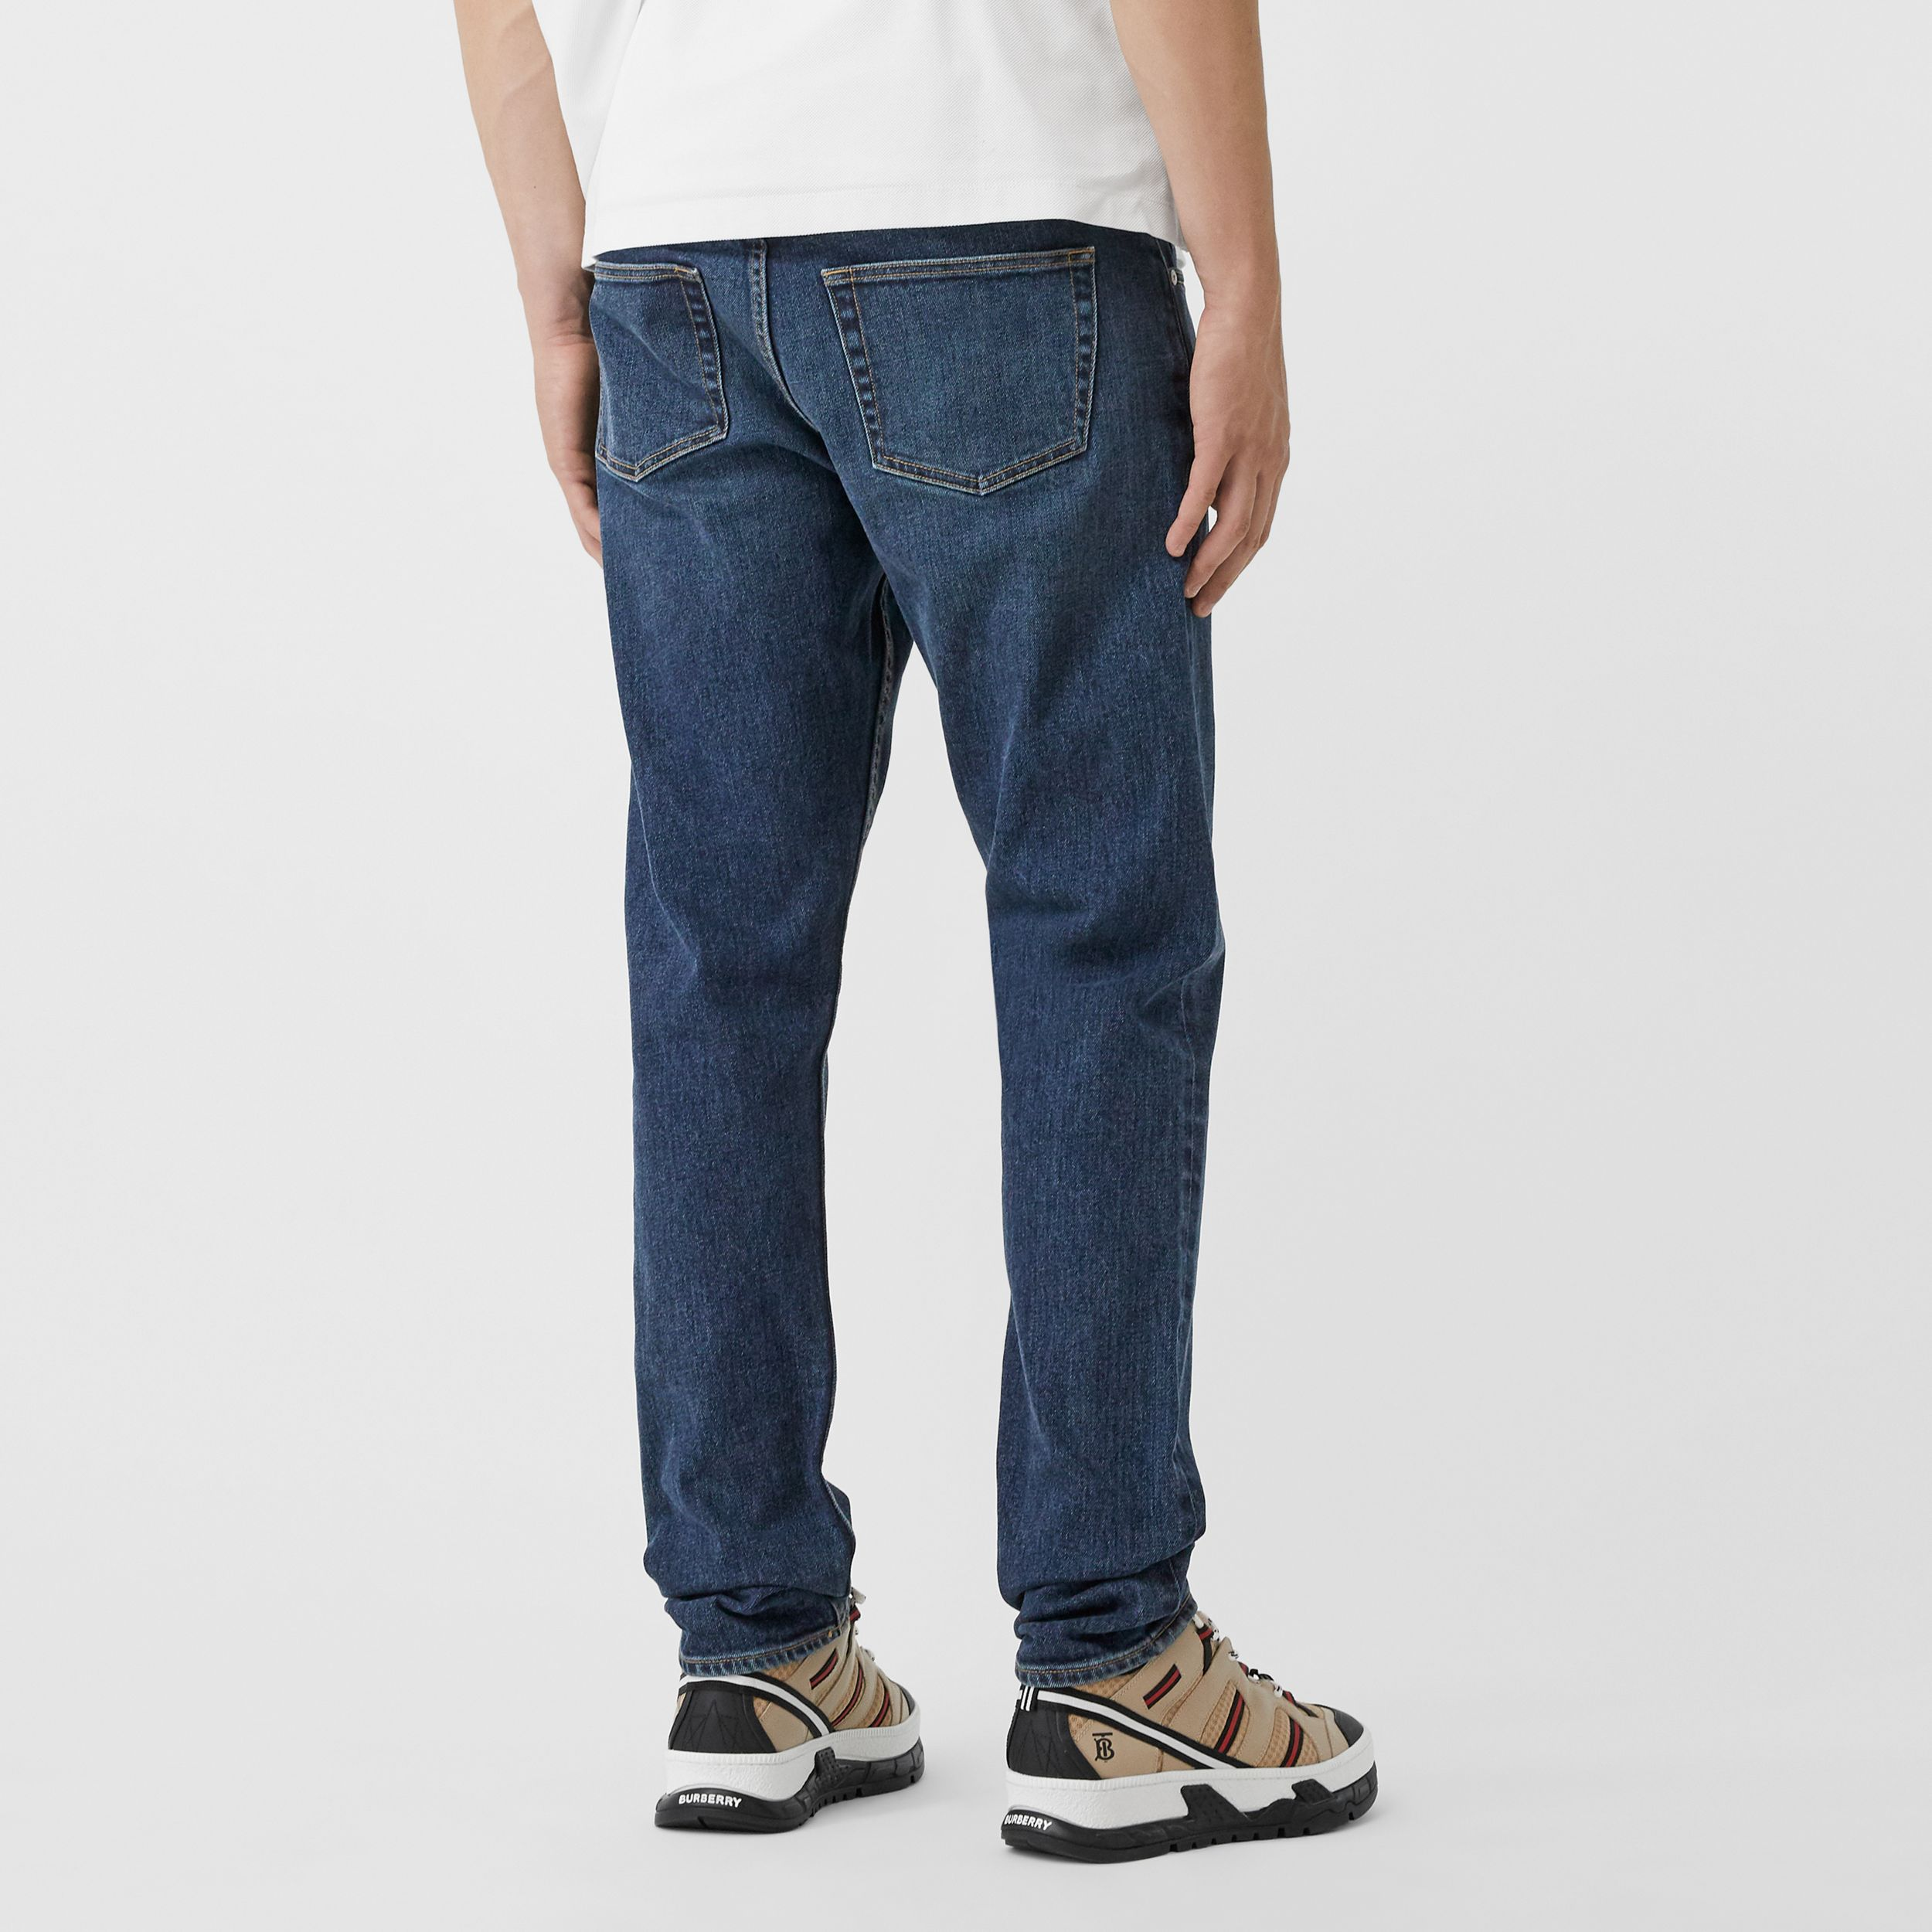 Slim Fit Washed Denim Jeans in Dark Indigo - Men | Burberry - 4